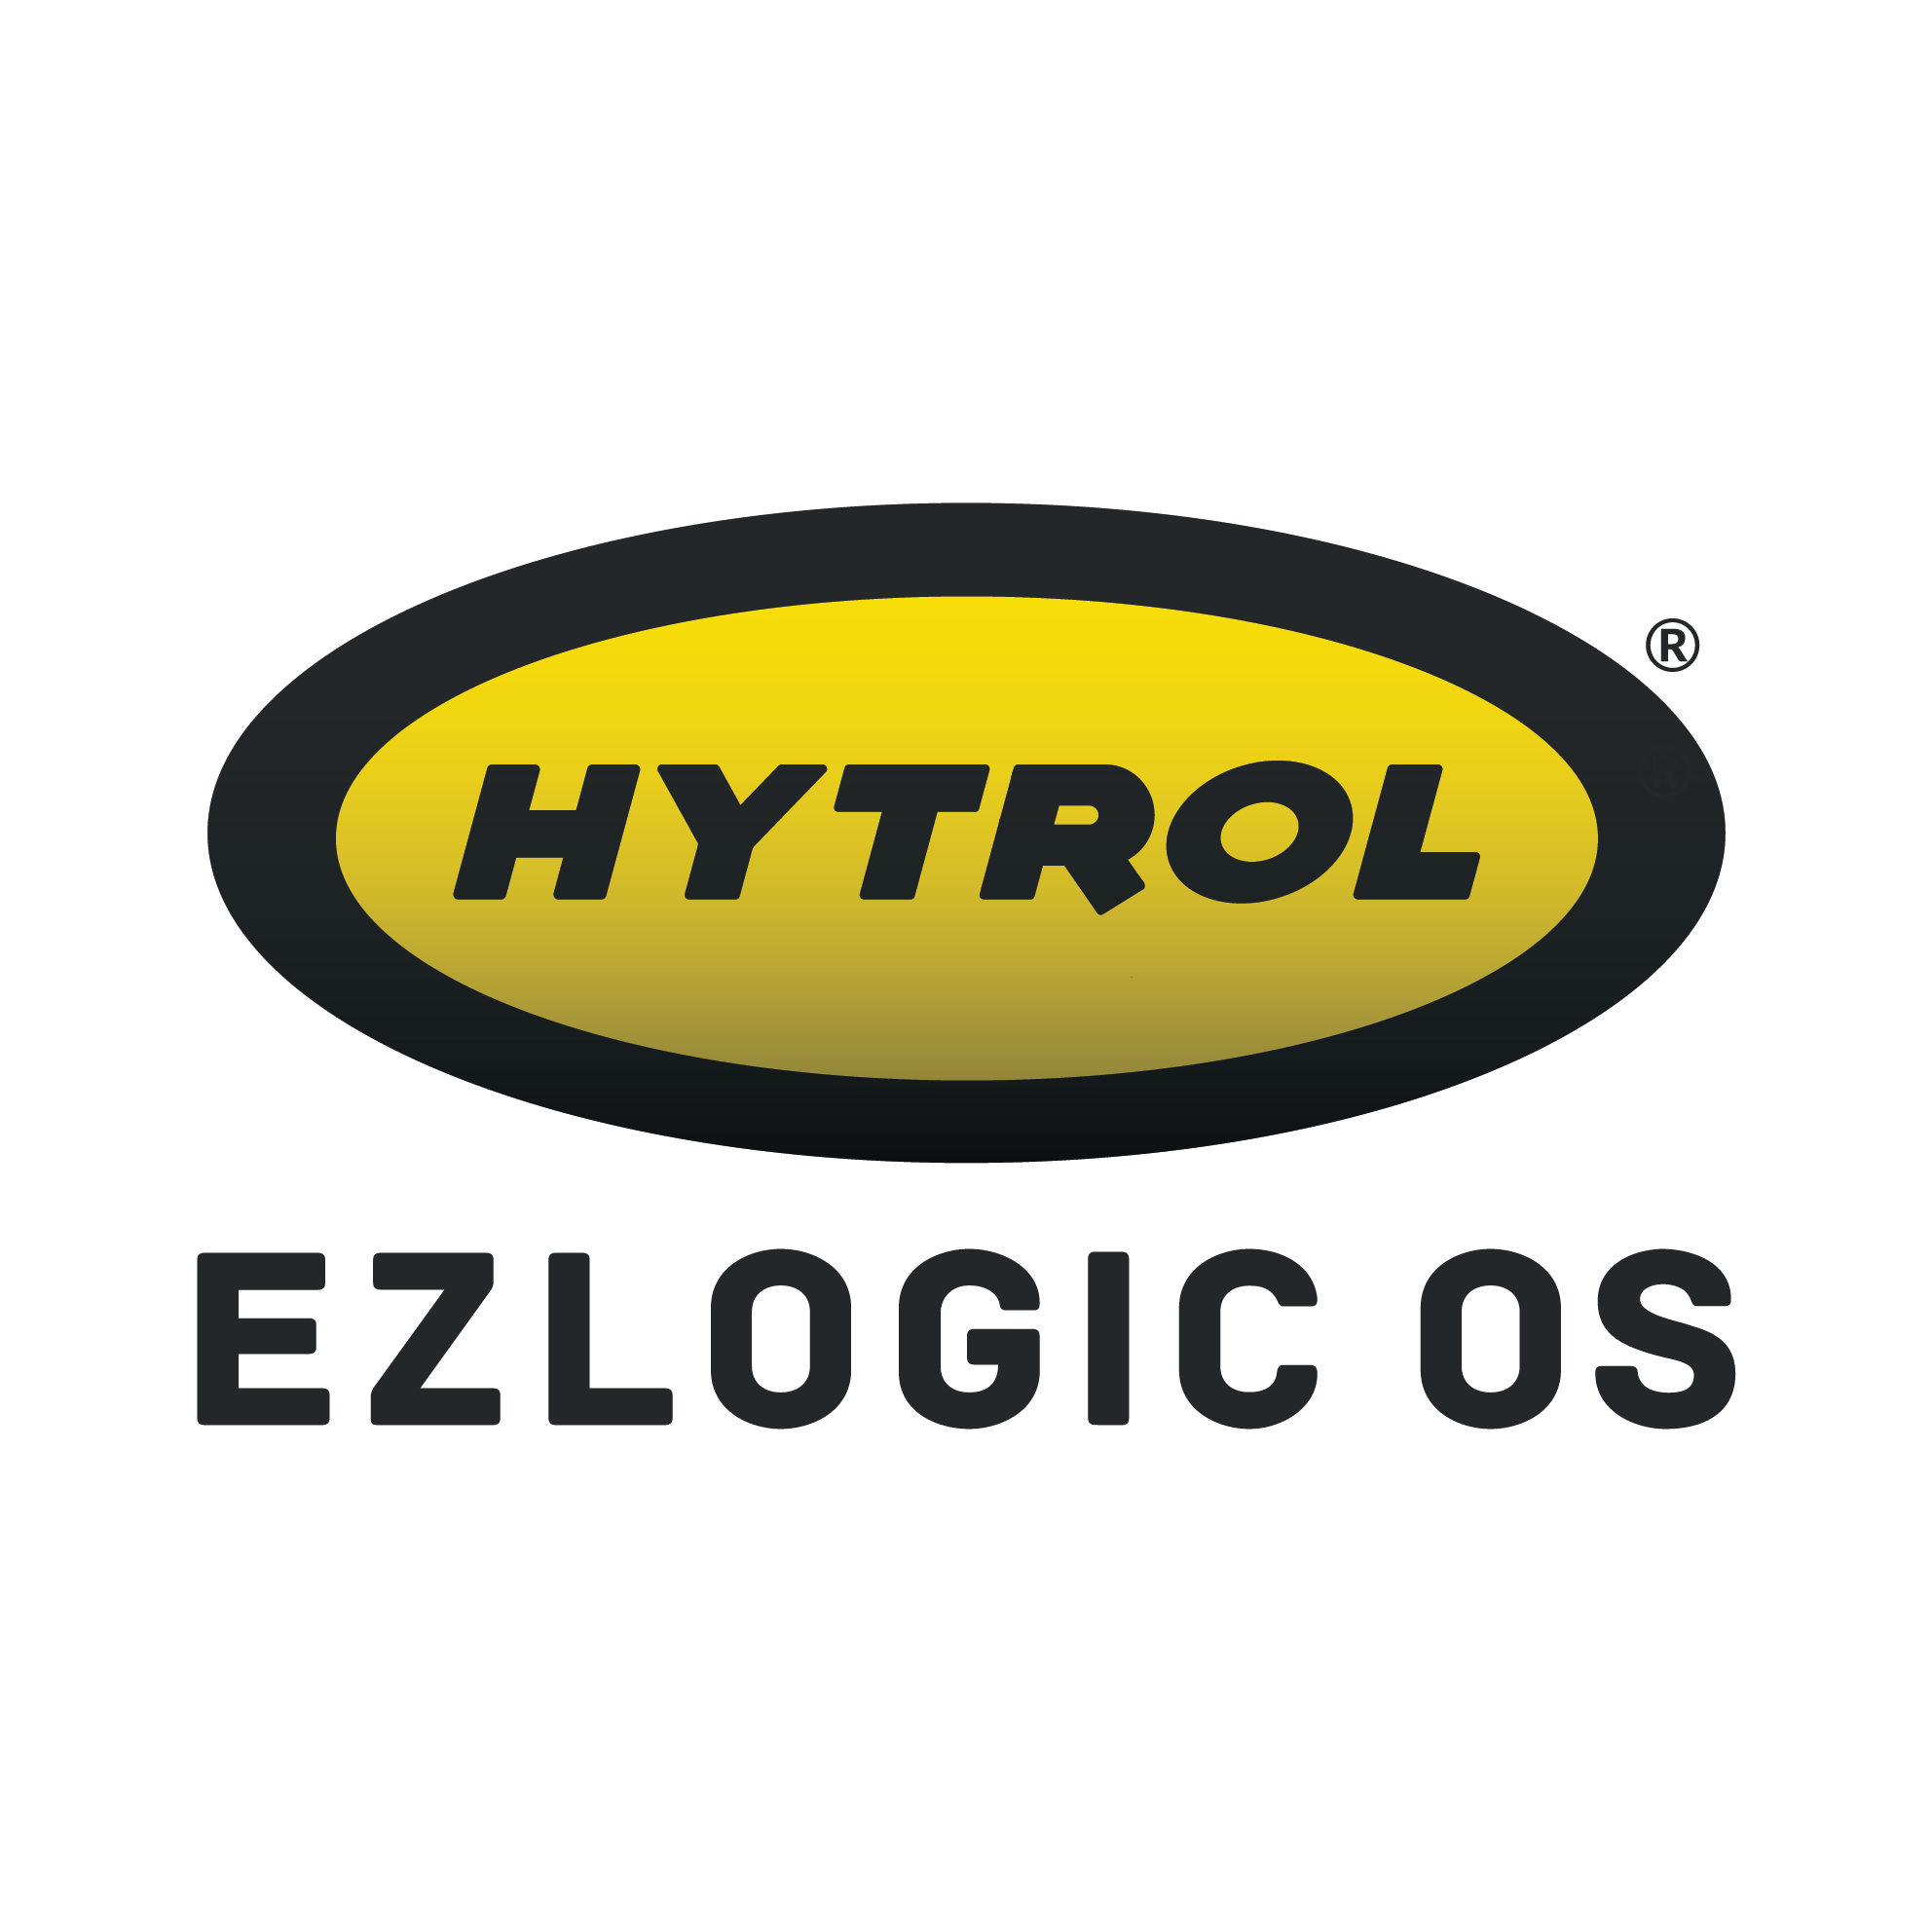 HYTROL LAUNCHES EZLOGIC® OS MOBILE APP